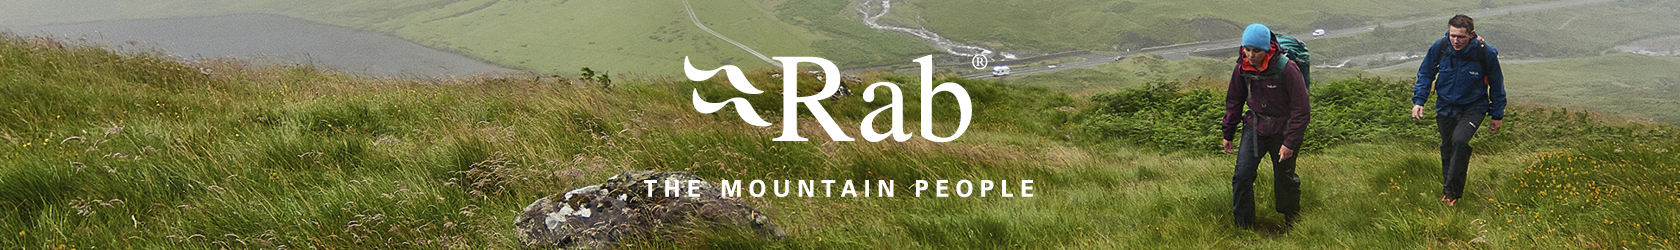 2 People wearing and using Rab gear are walking up a grassy hill.